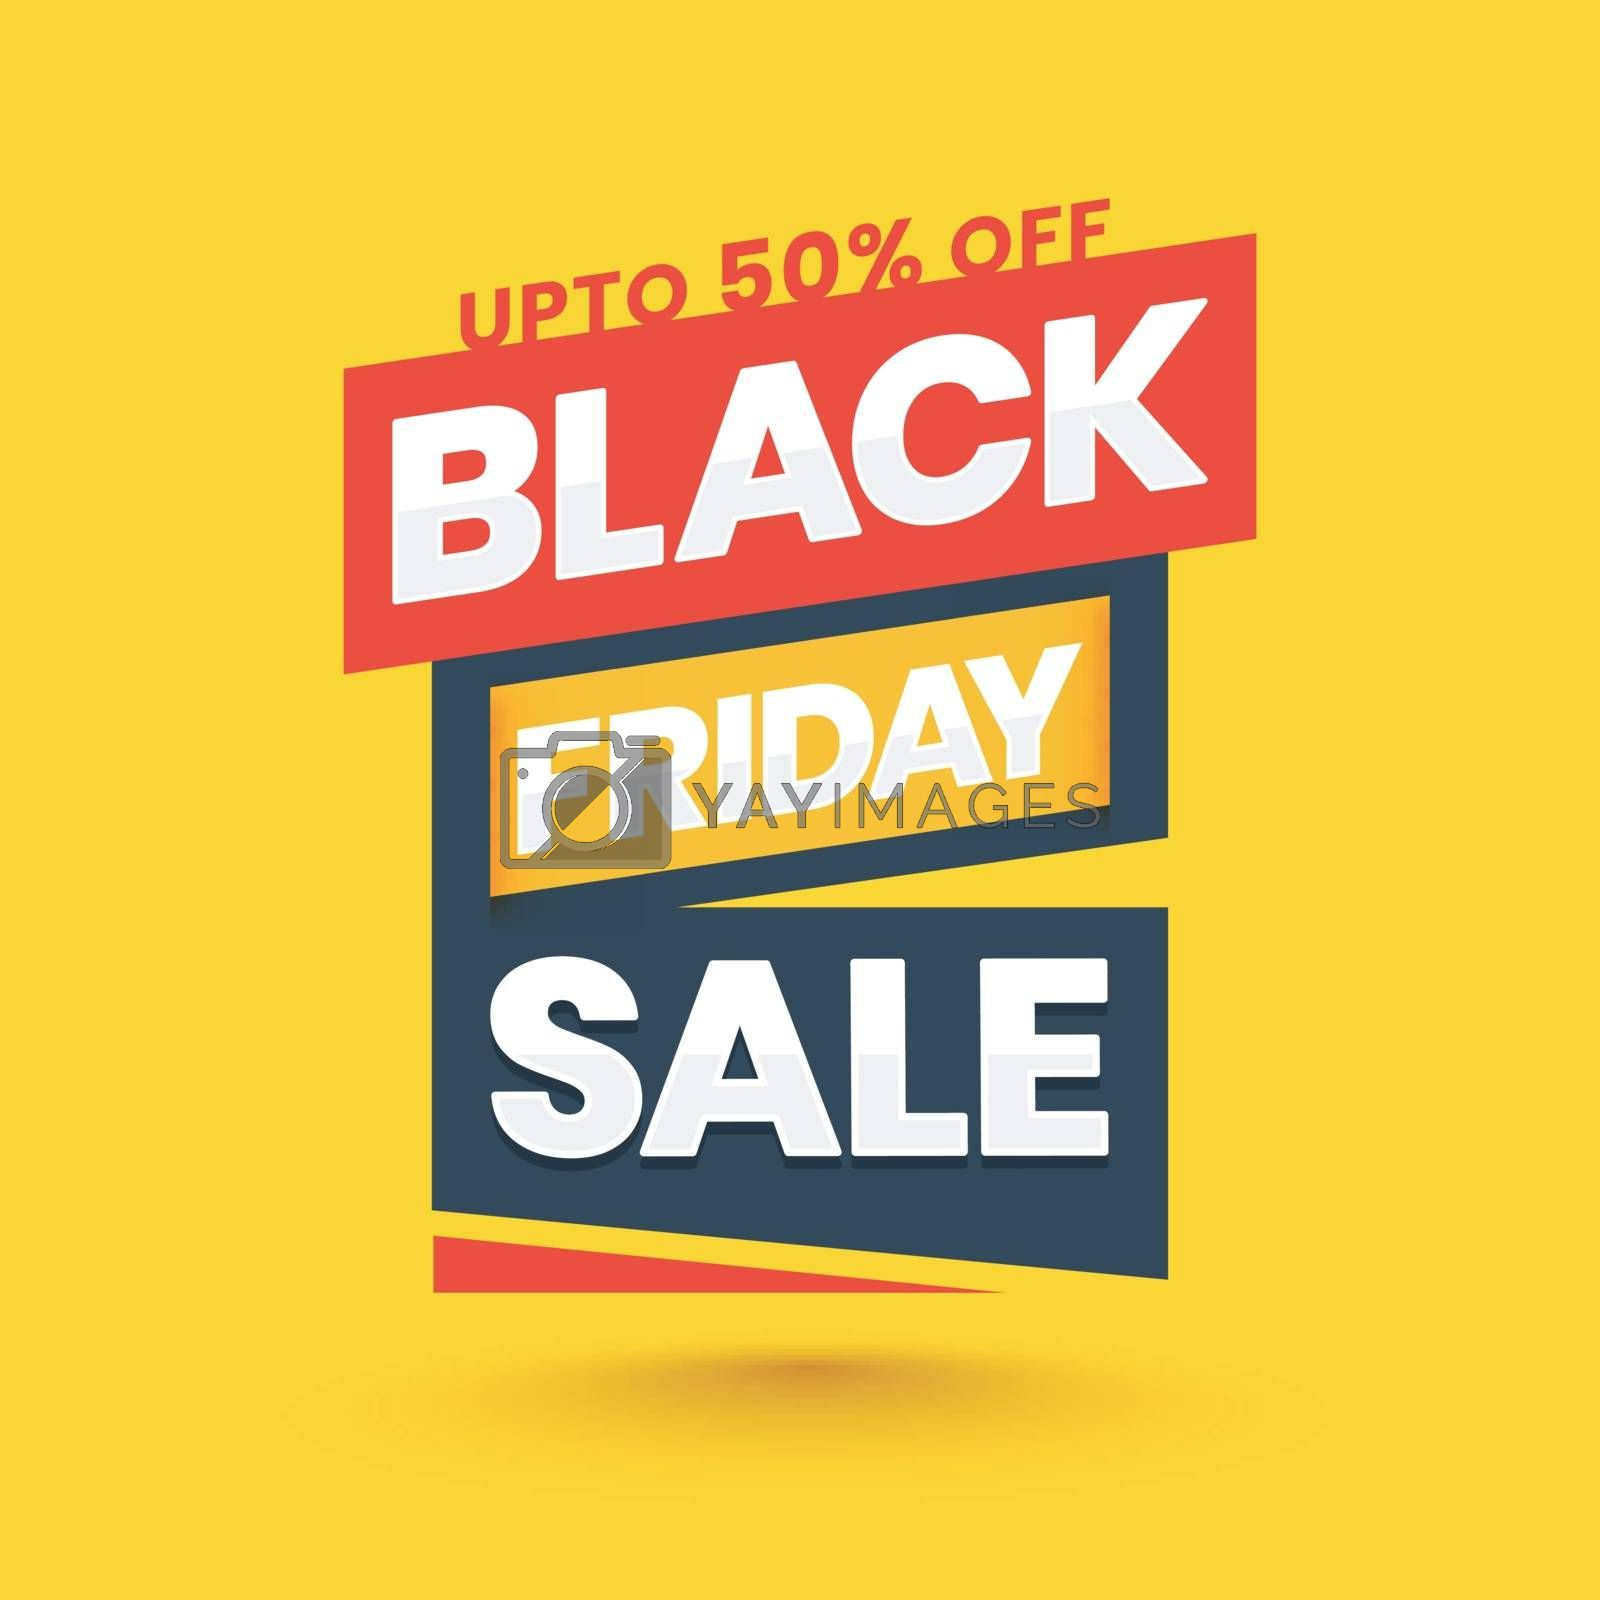 Black Friday Sale tag or label with 50% discount offer on yellow background.